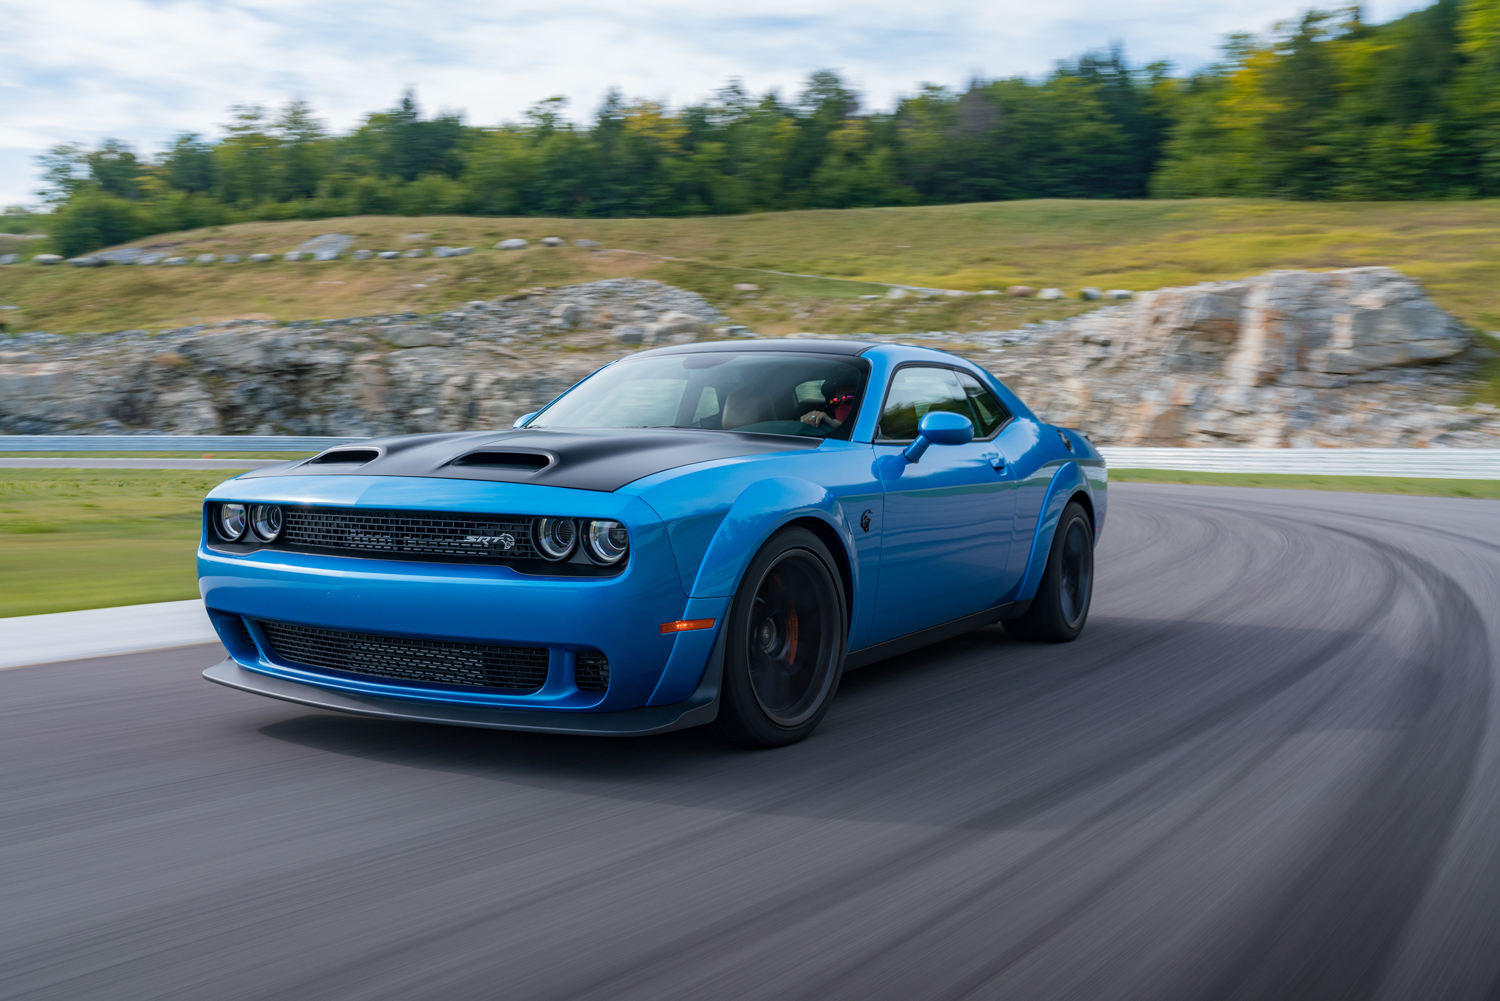 2019 Challenger SRT Hellcat Redeye Widebody on track drivers side